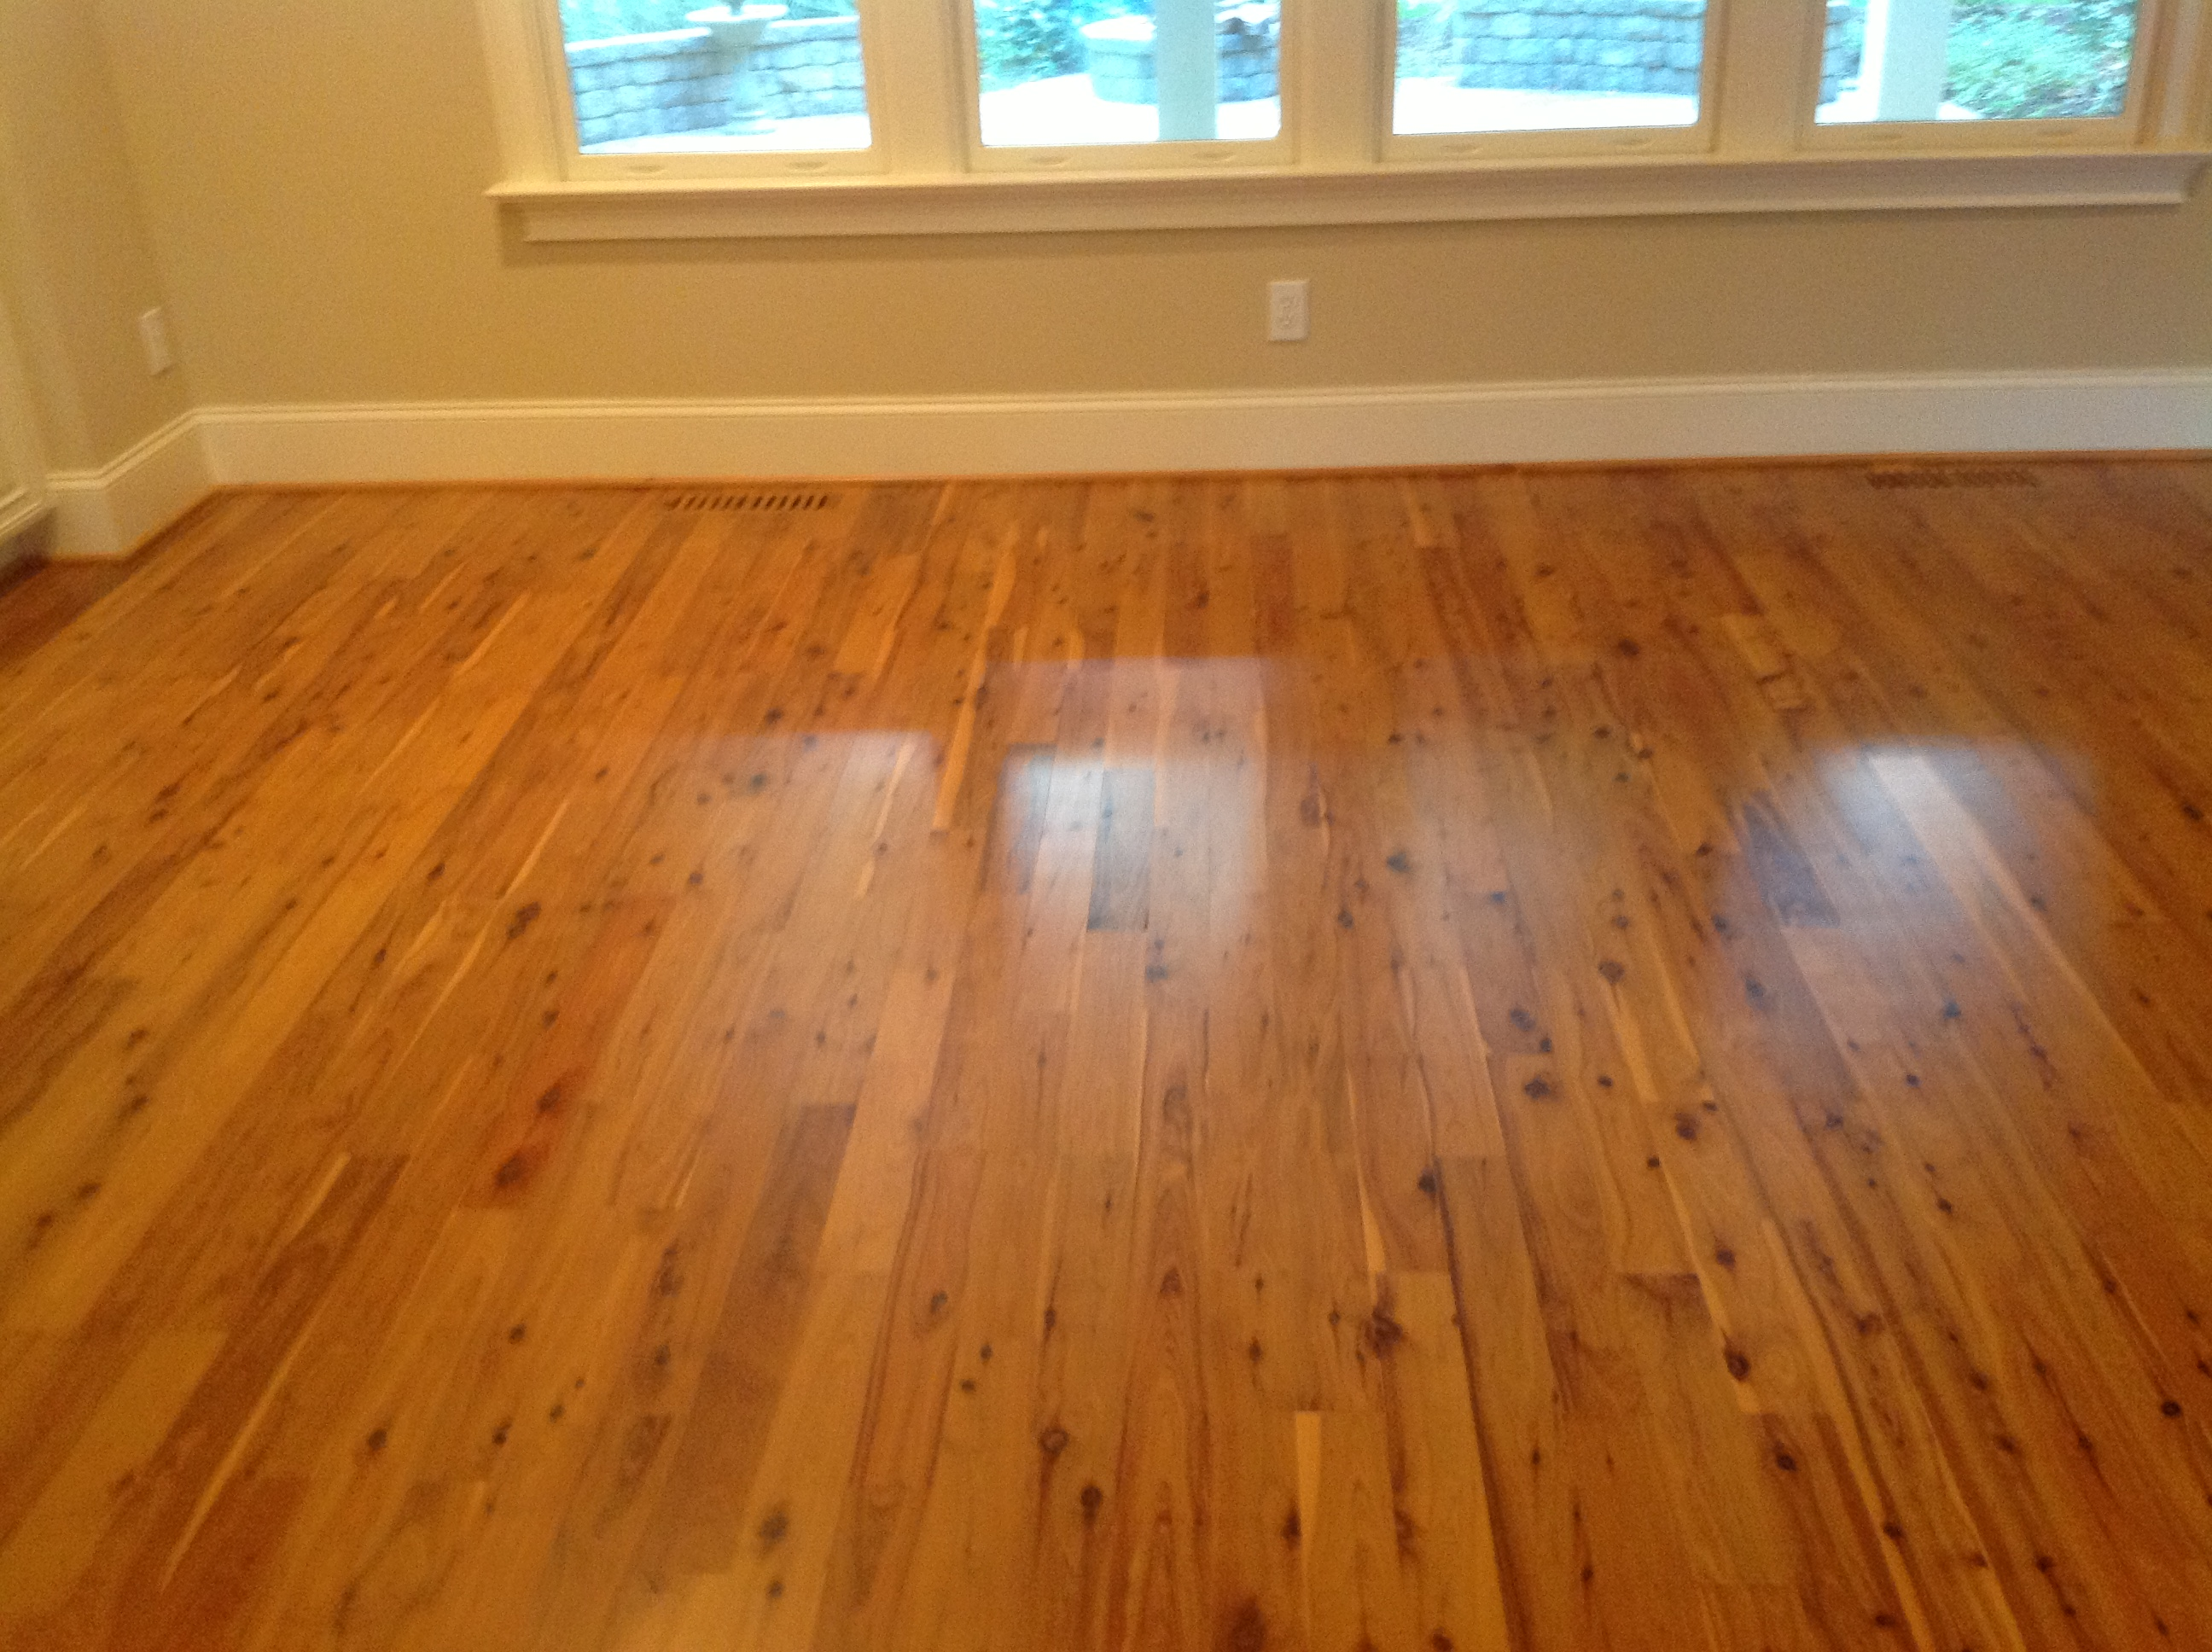 Installation Hardwood Floors >> New Our Hardwood Flooring Photo Gallery Of Our Customer's ...